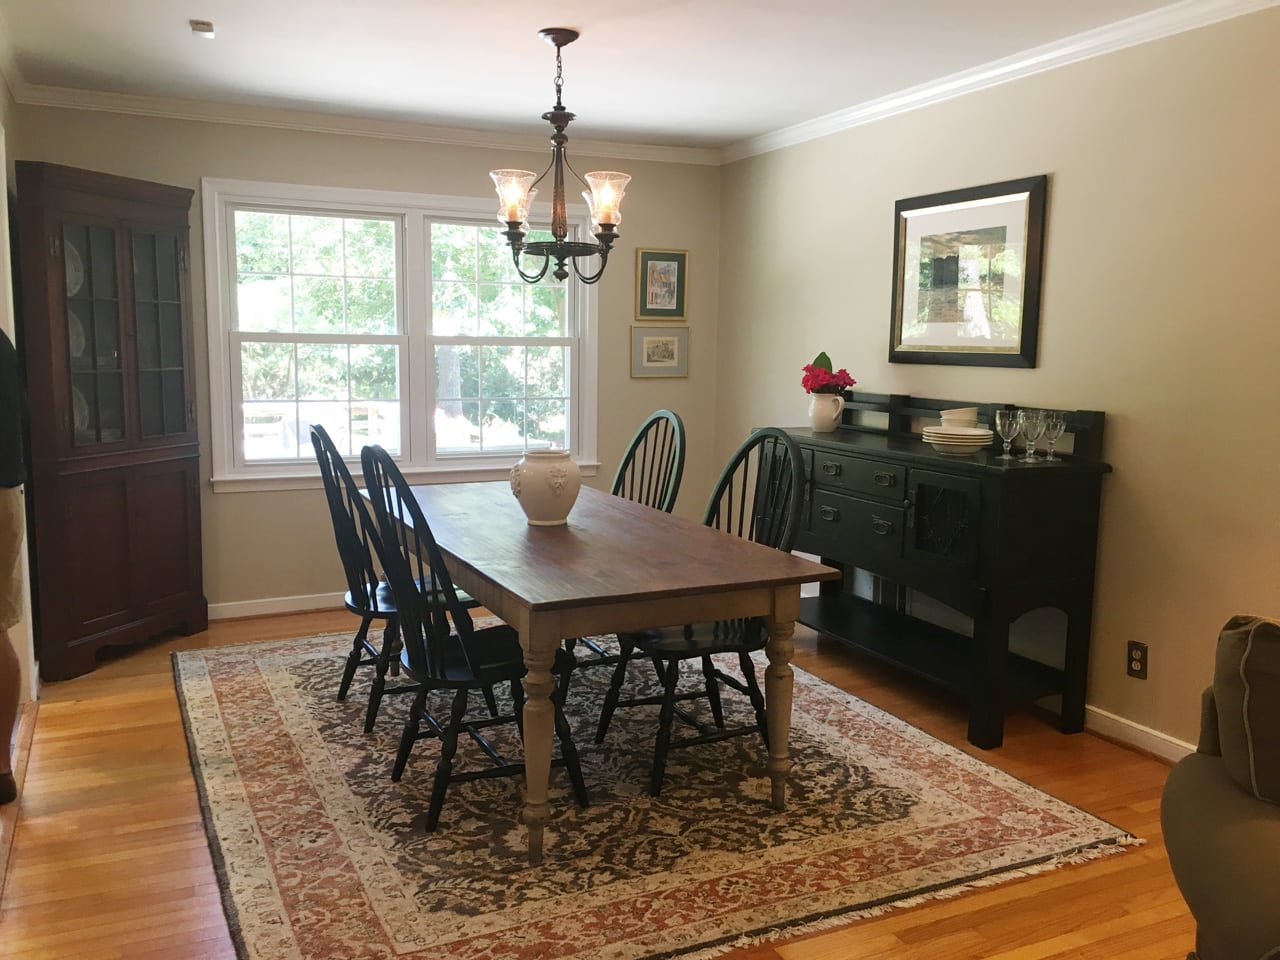 Model home staged by Decorum Staging and Redesign